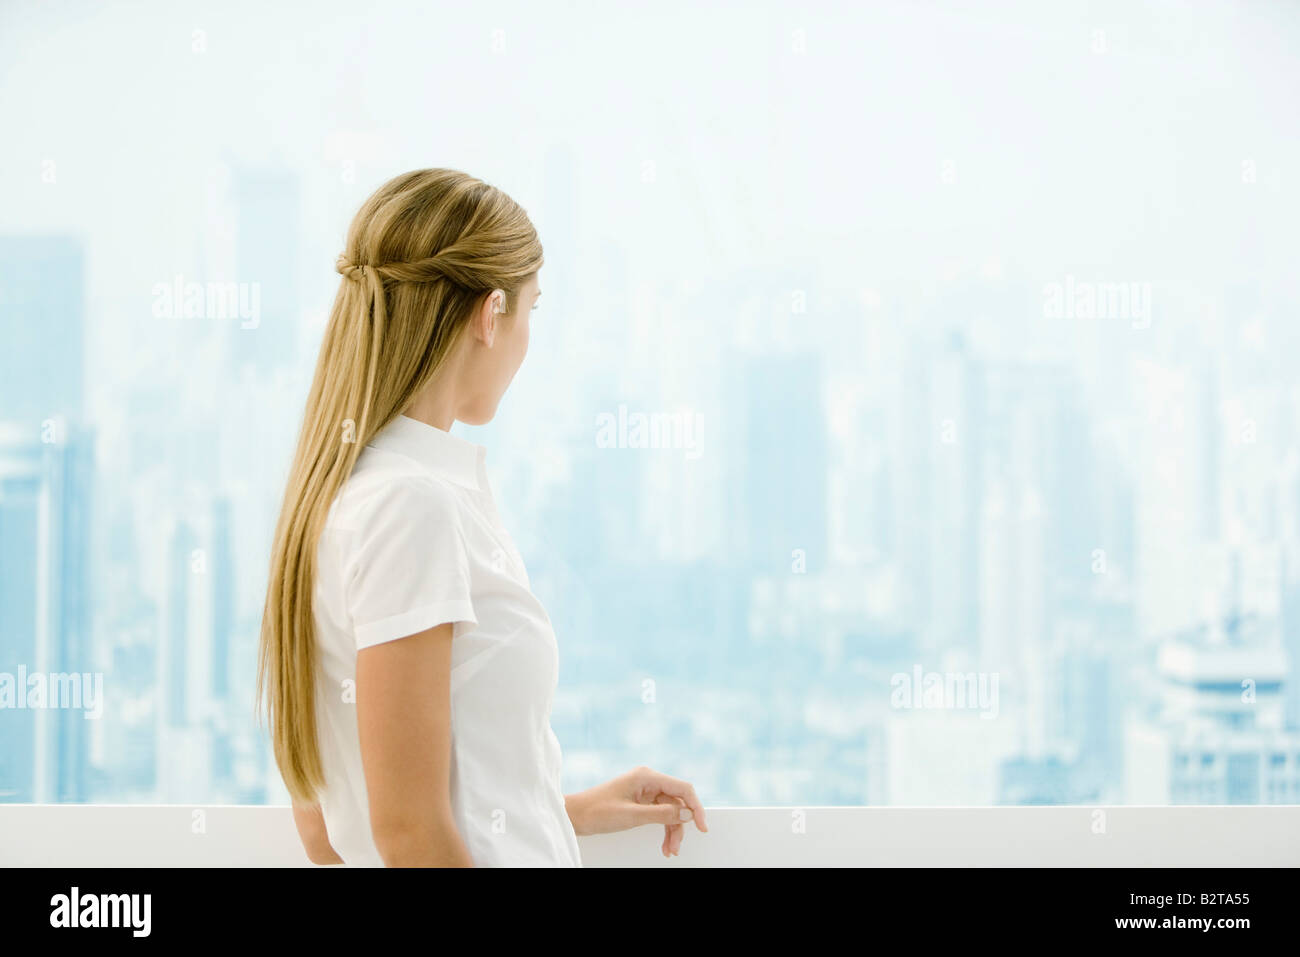 Young woman standing in front window, looking out - Stock Image